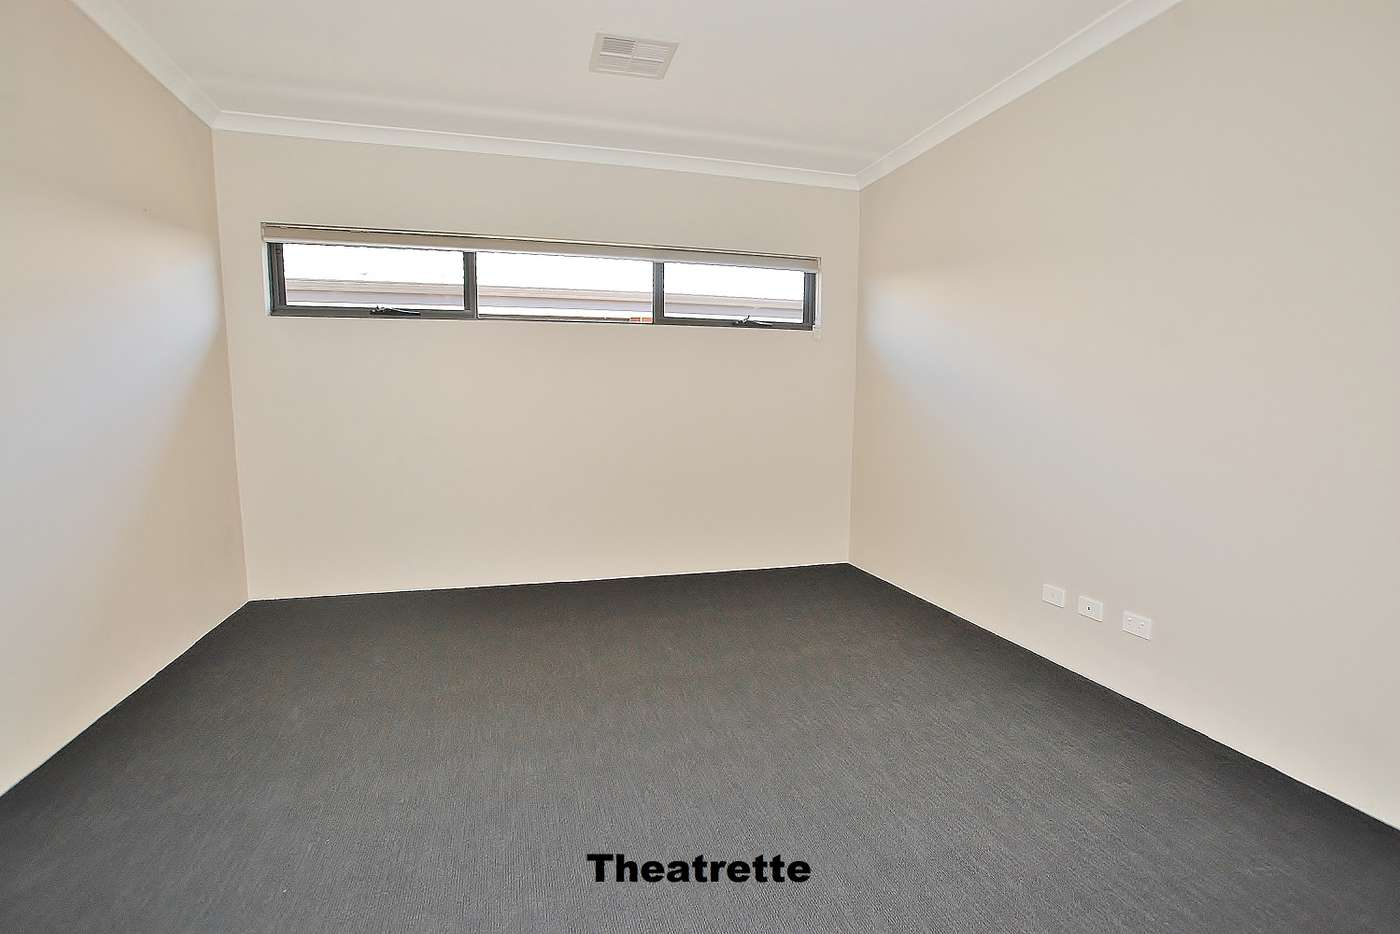 Sixth view of Homely house listing, 10 Slade Avenue, Ellenbrook WA 6069